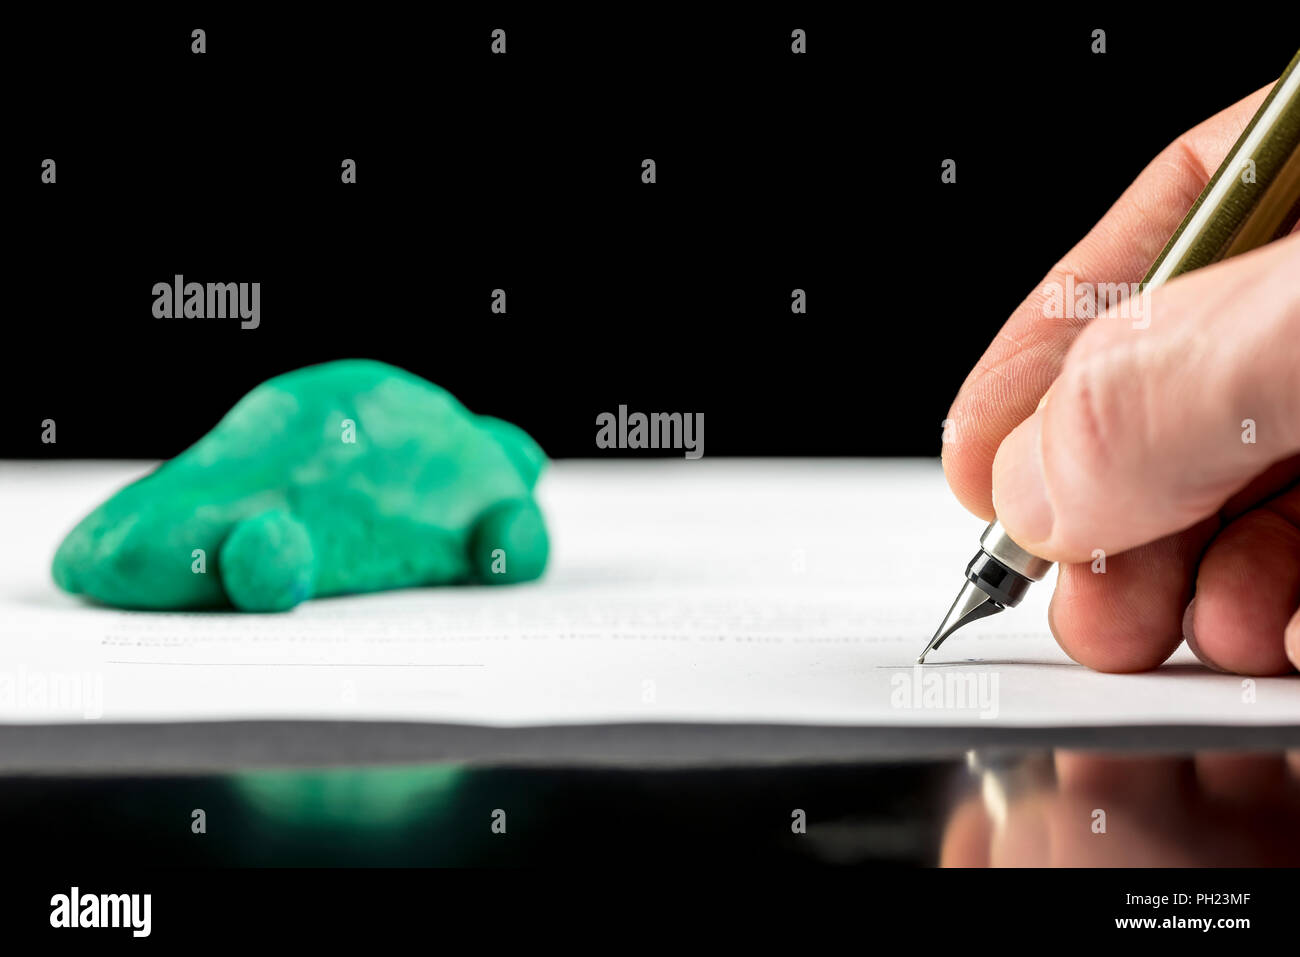 Conceptual image of the hand of a man signing a contract for the lease or purchase a green eco-friendly fuel efficient, electric or hybrid car with re - Stock Image